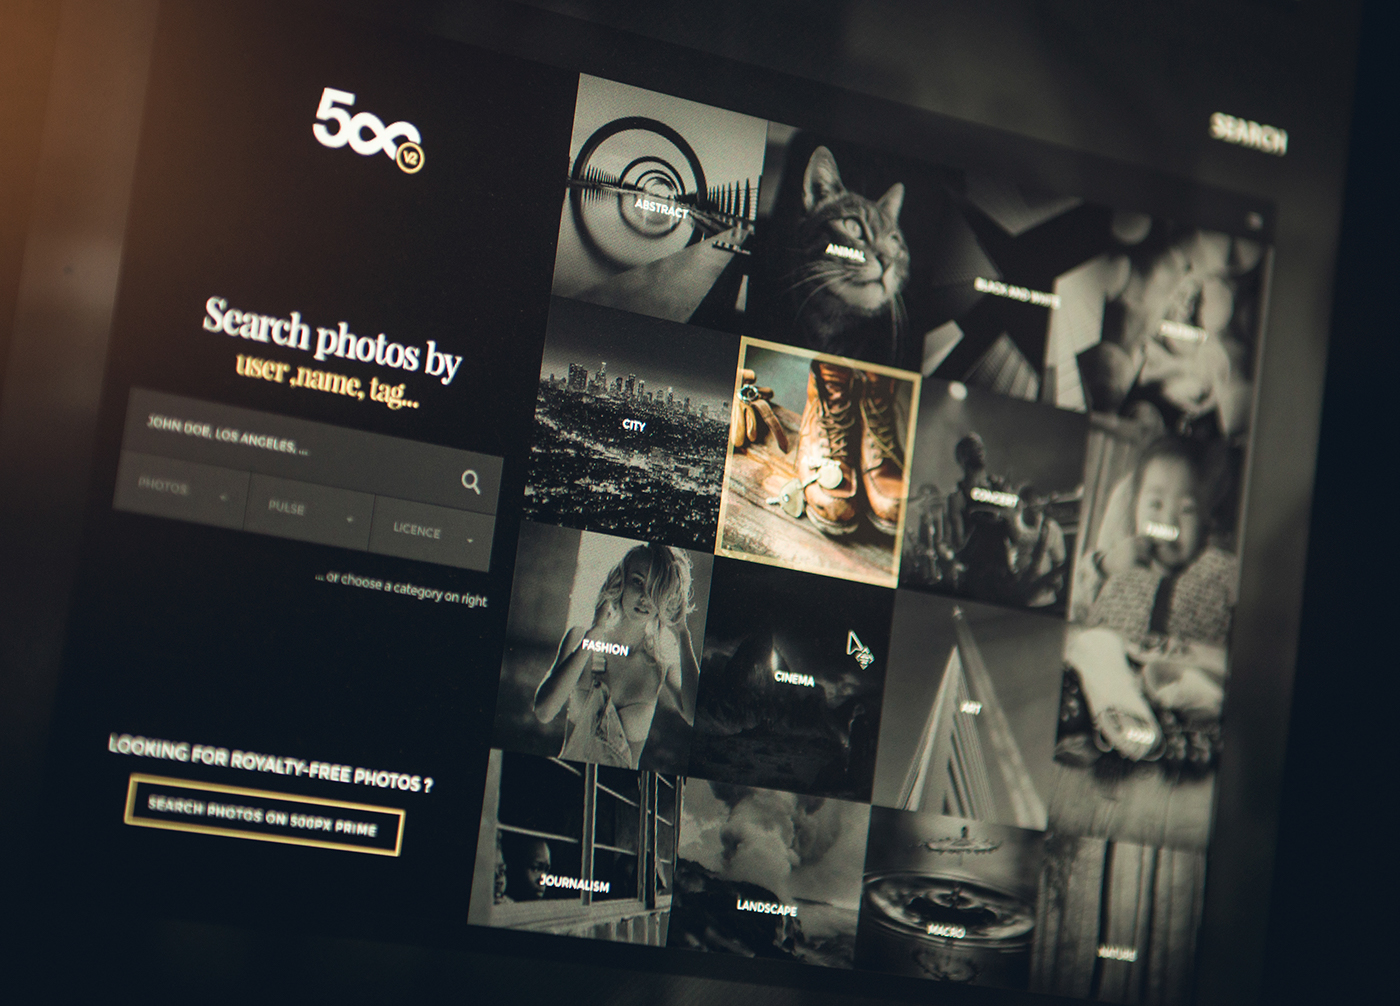 500px redesign concept approach on Behance